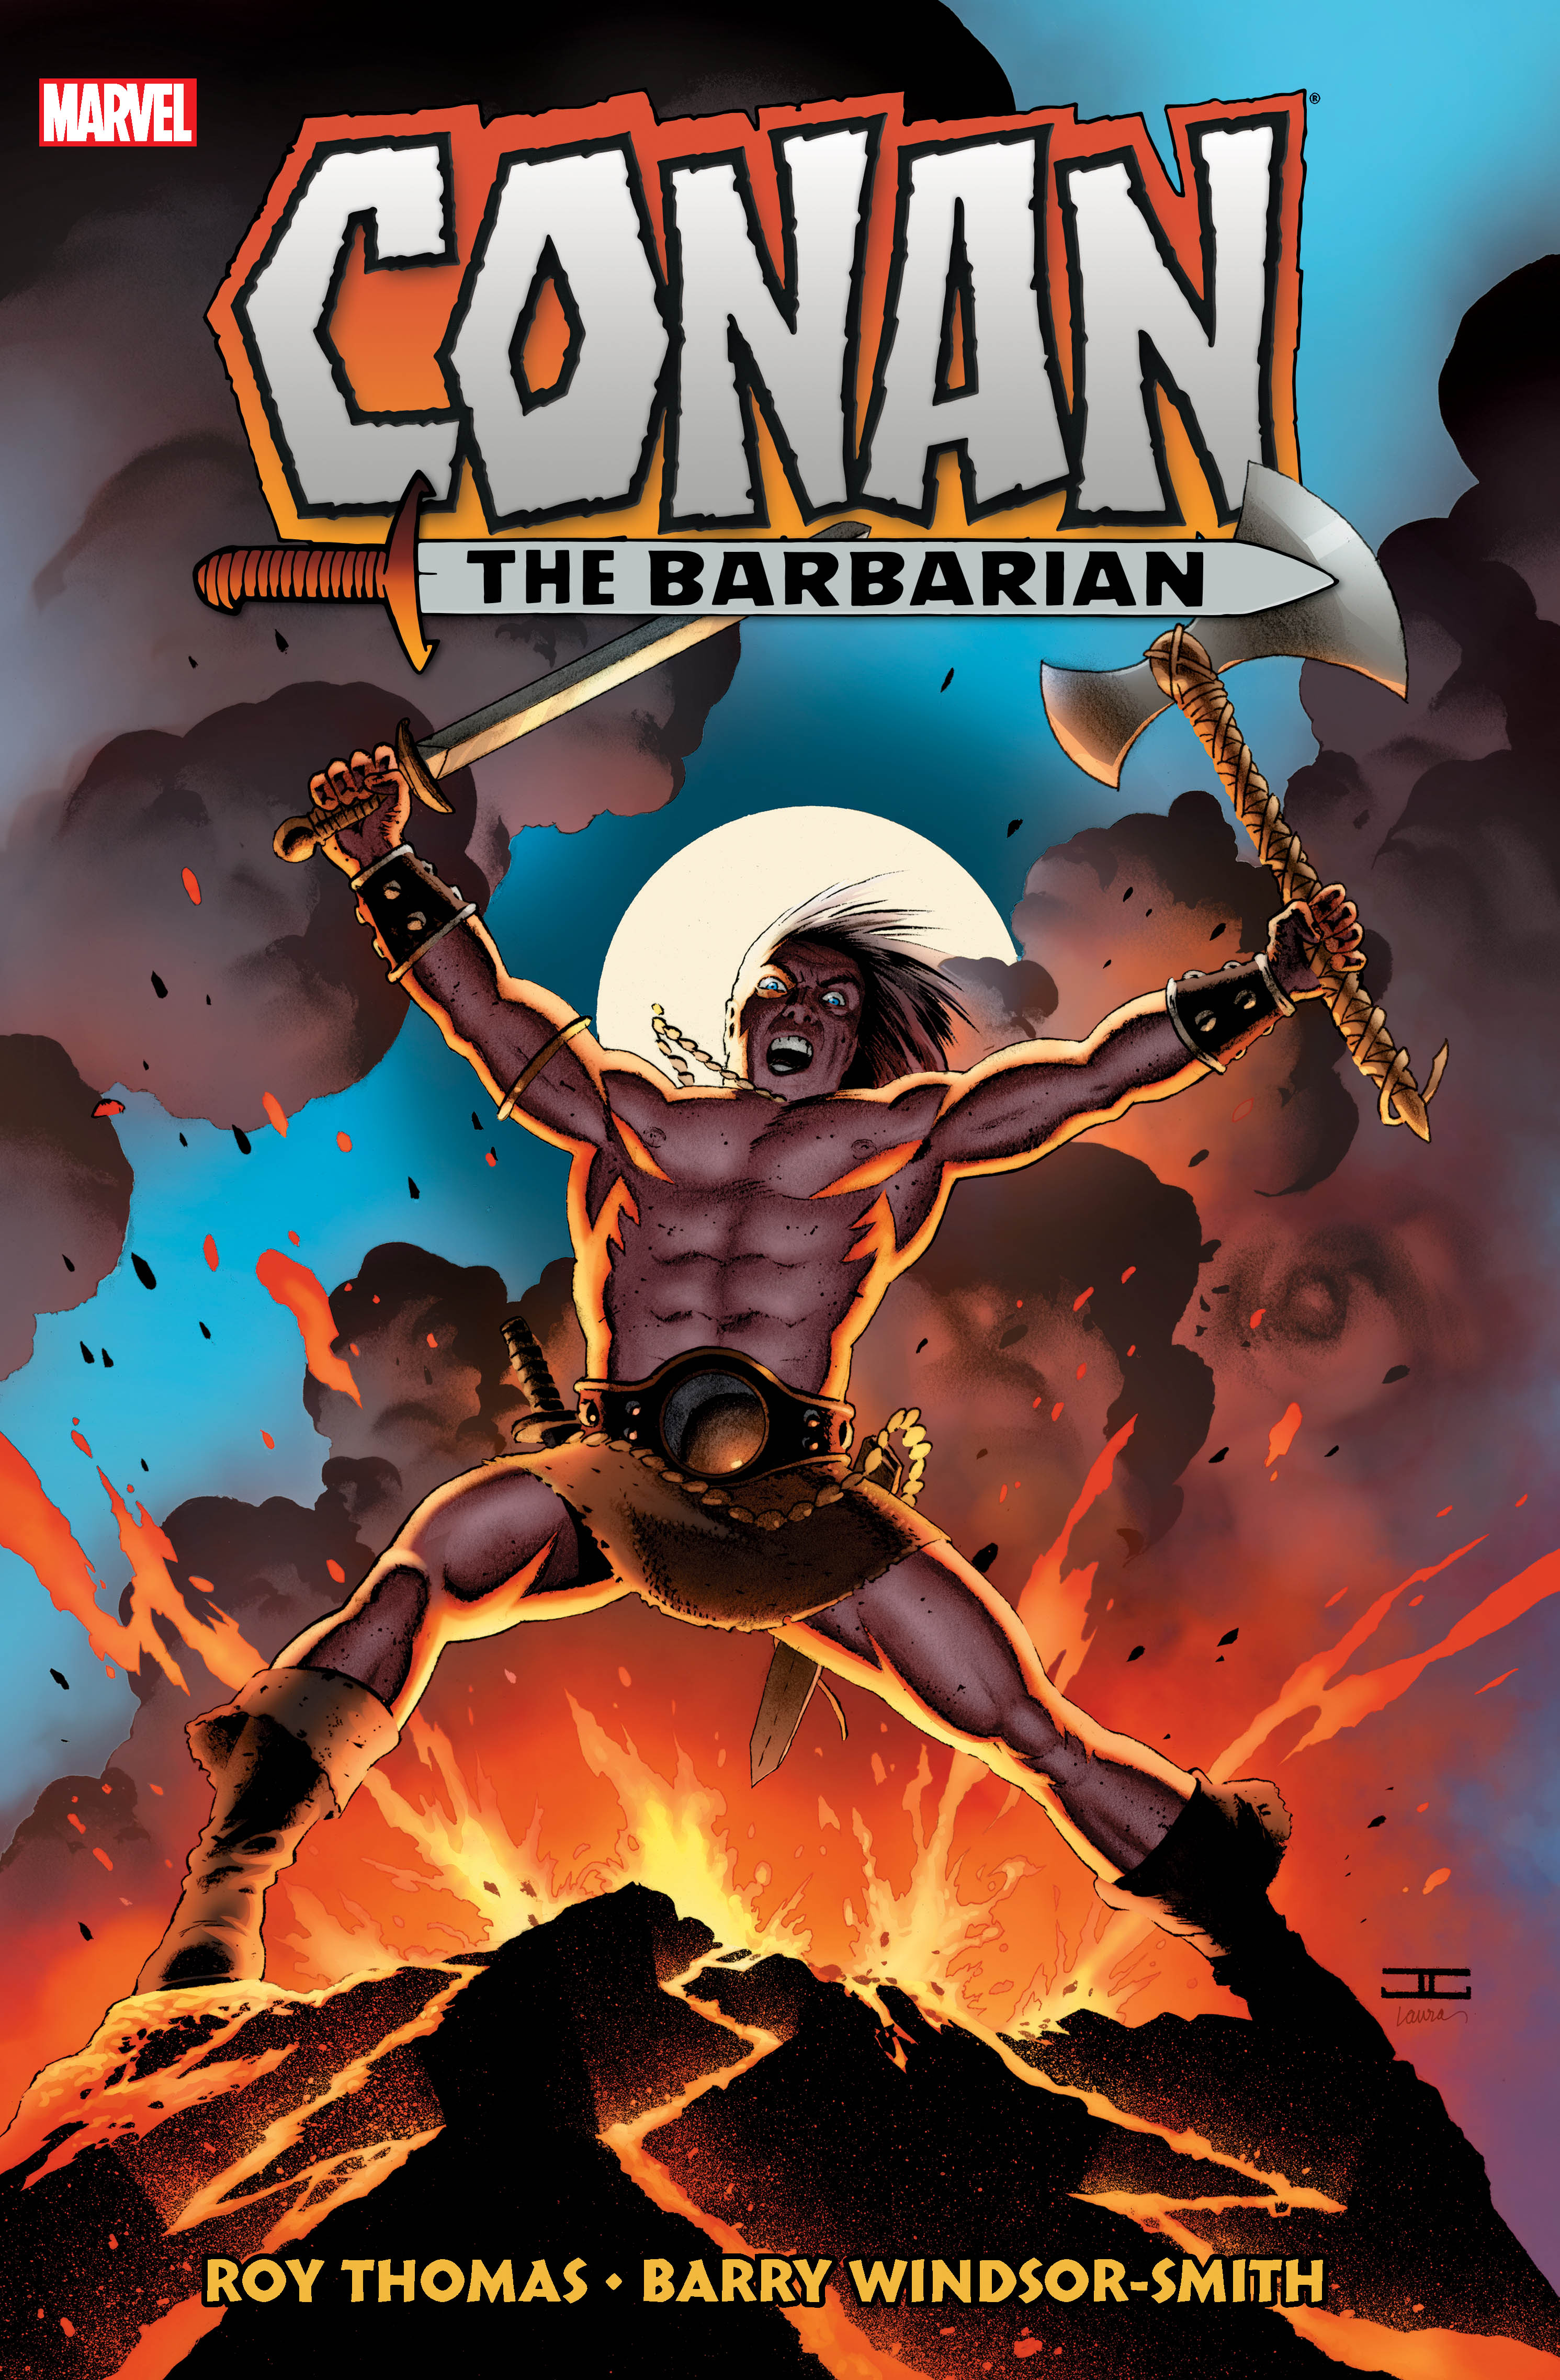 Conan the Barbarian: The Original Marvel Years Omnibus Vol. 1 (Hardcover)